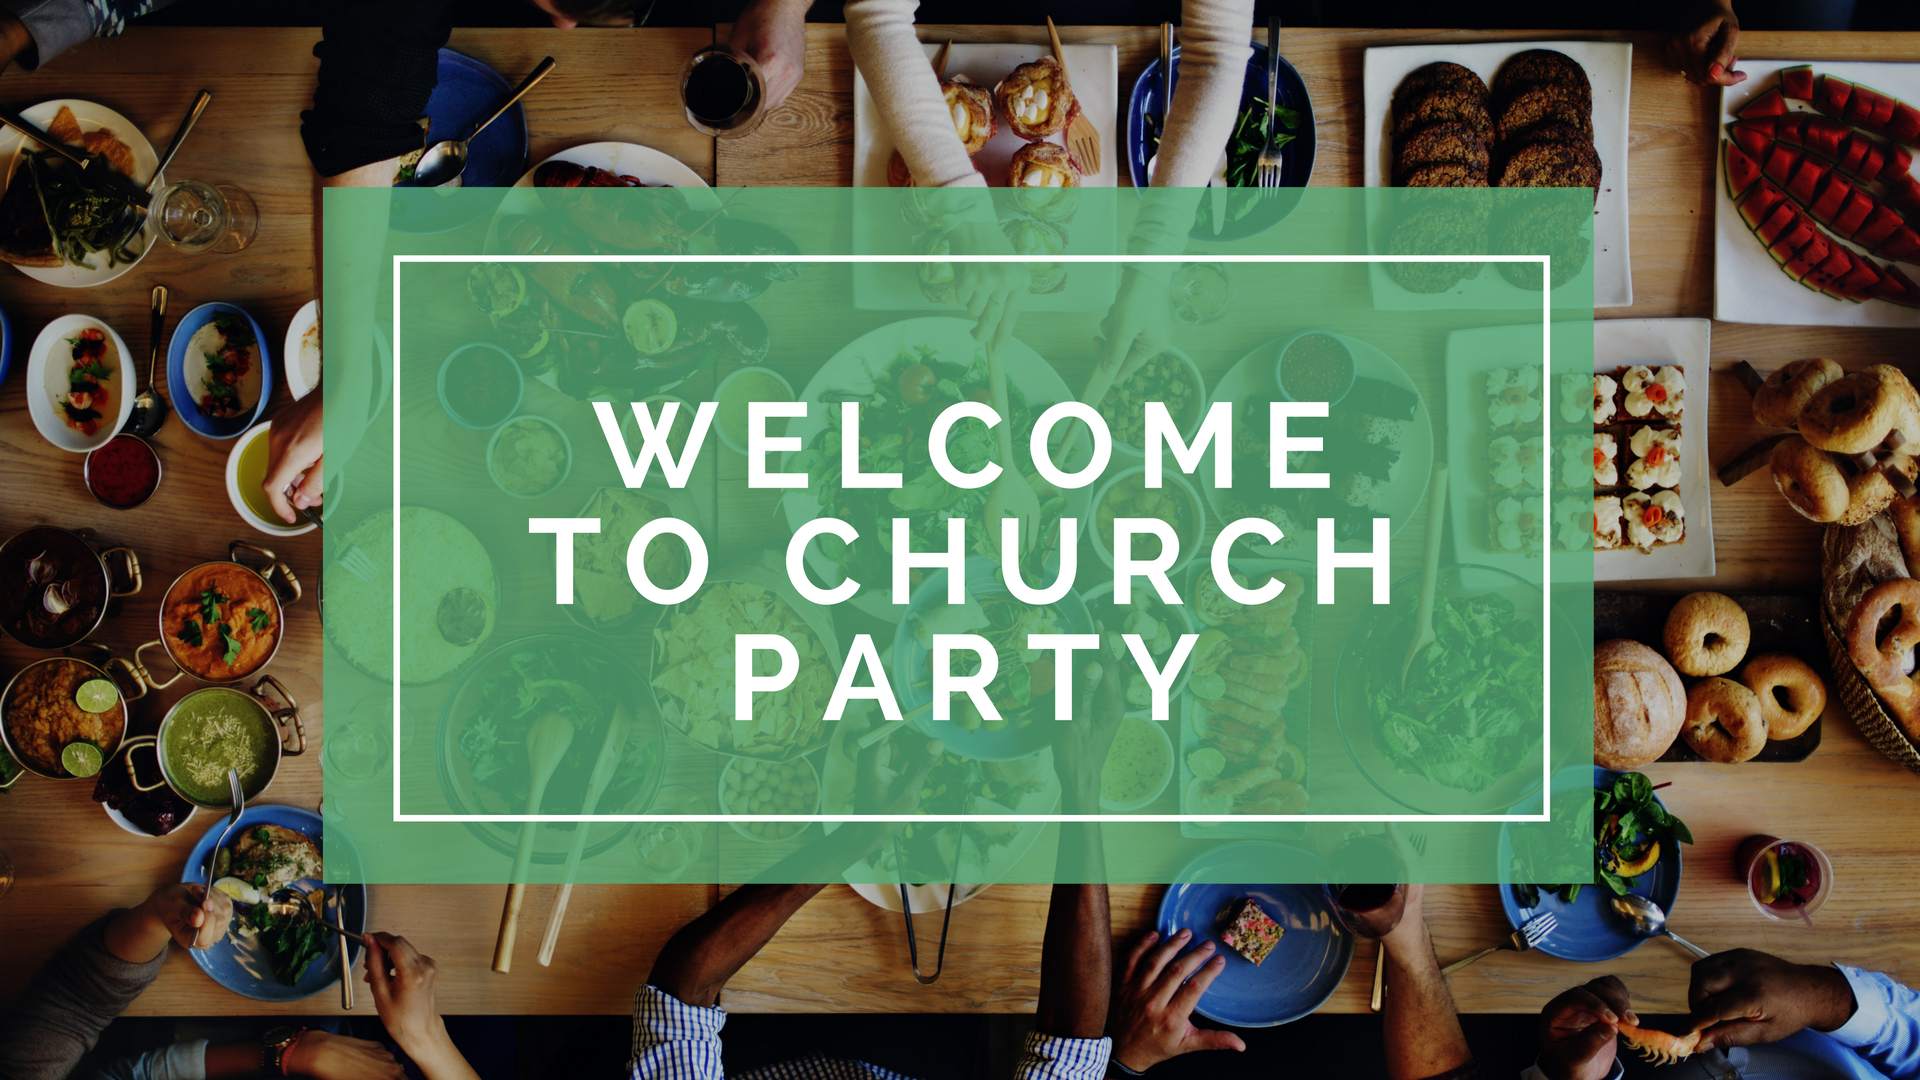 Welcome to church party  1